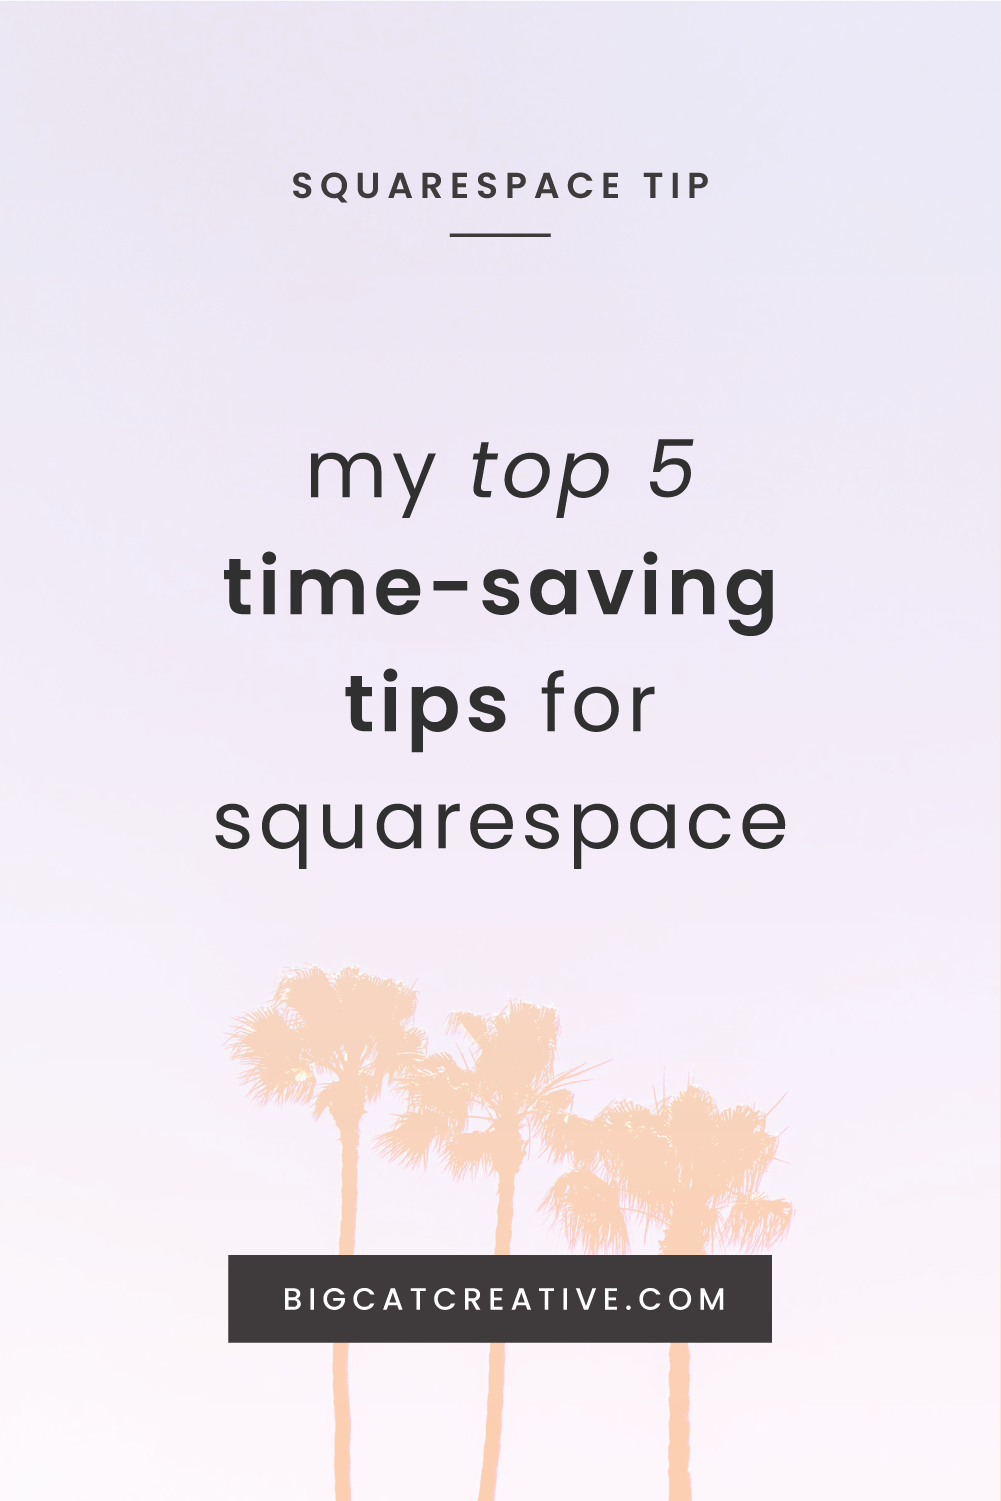 My Top 5 Time-Saving Tips for Squarespace - Squarespace Tutorials by Big Cat Creative | Squarespace Web Design Tips | Design Tips for Squarespace | Working Efficiently in Squarespace | How to Save Time With Squarespace | Best Squarespace Tips